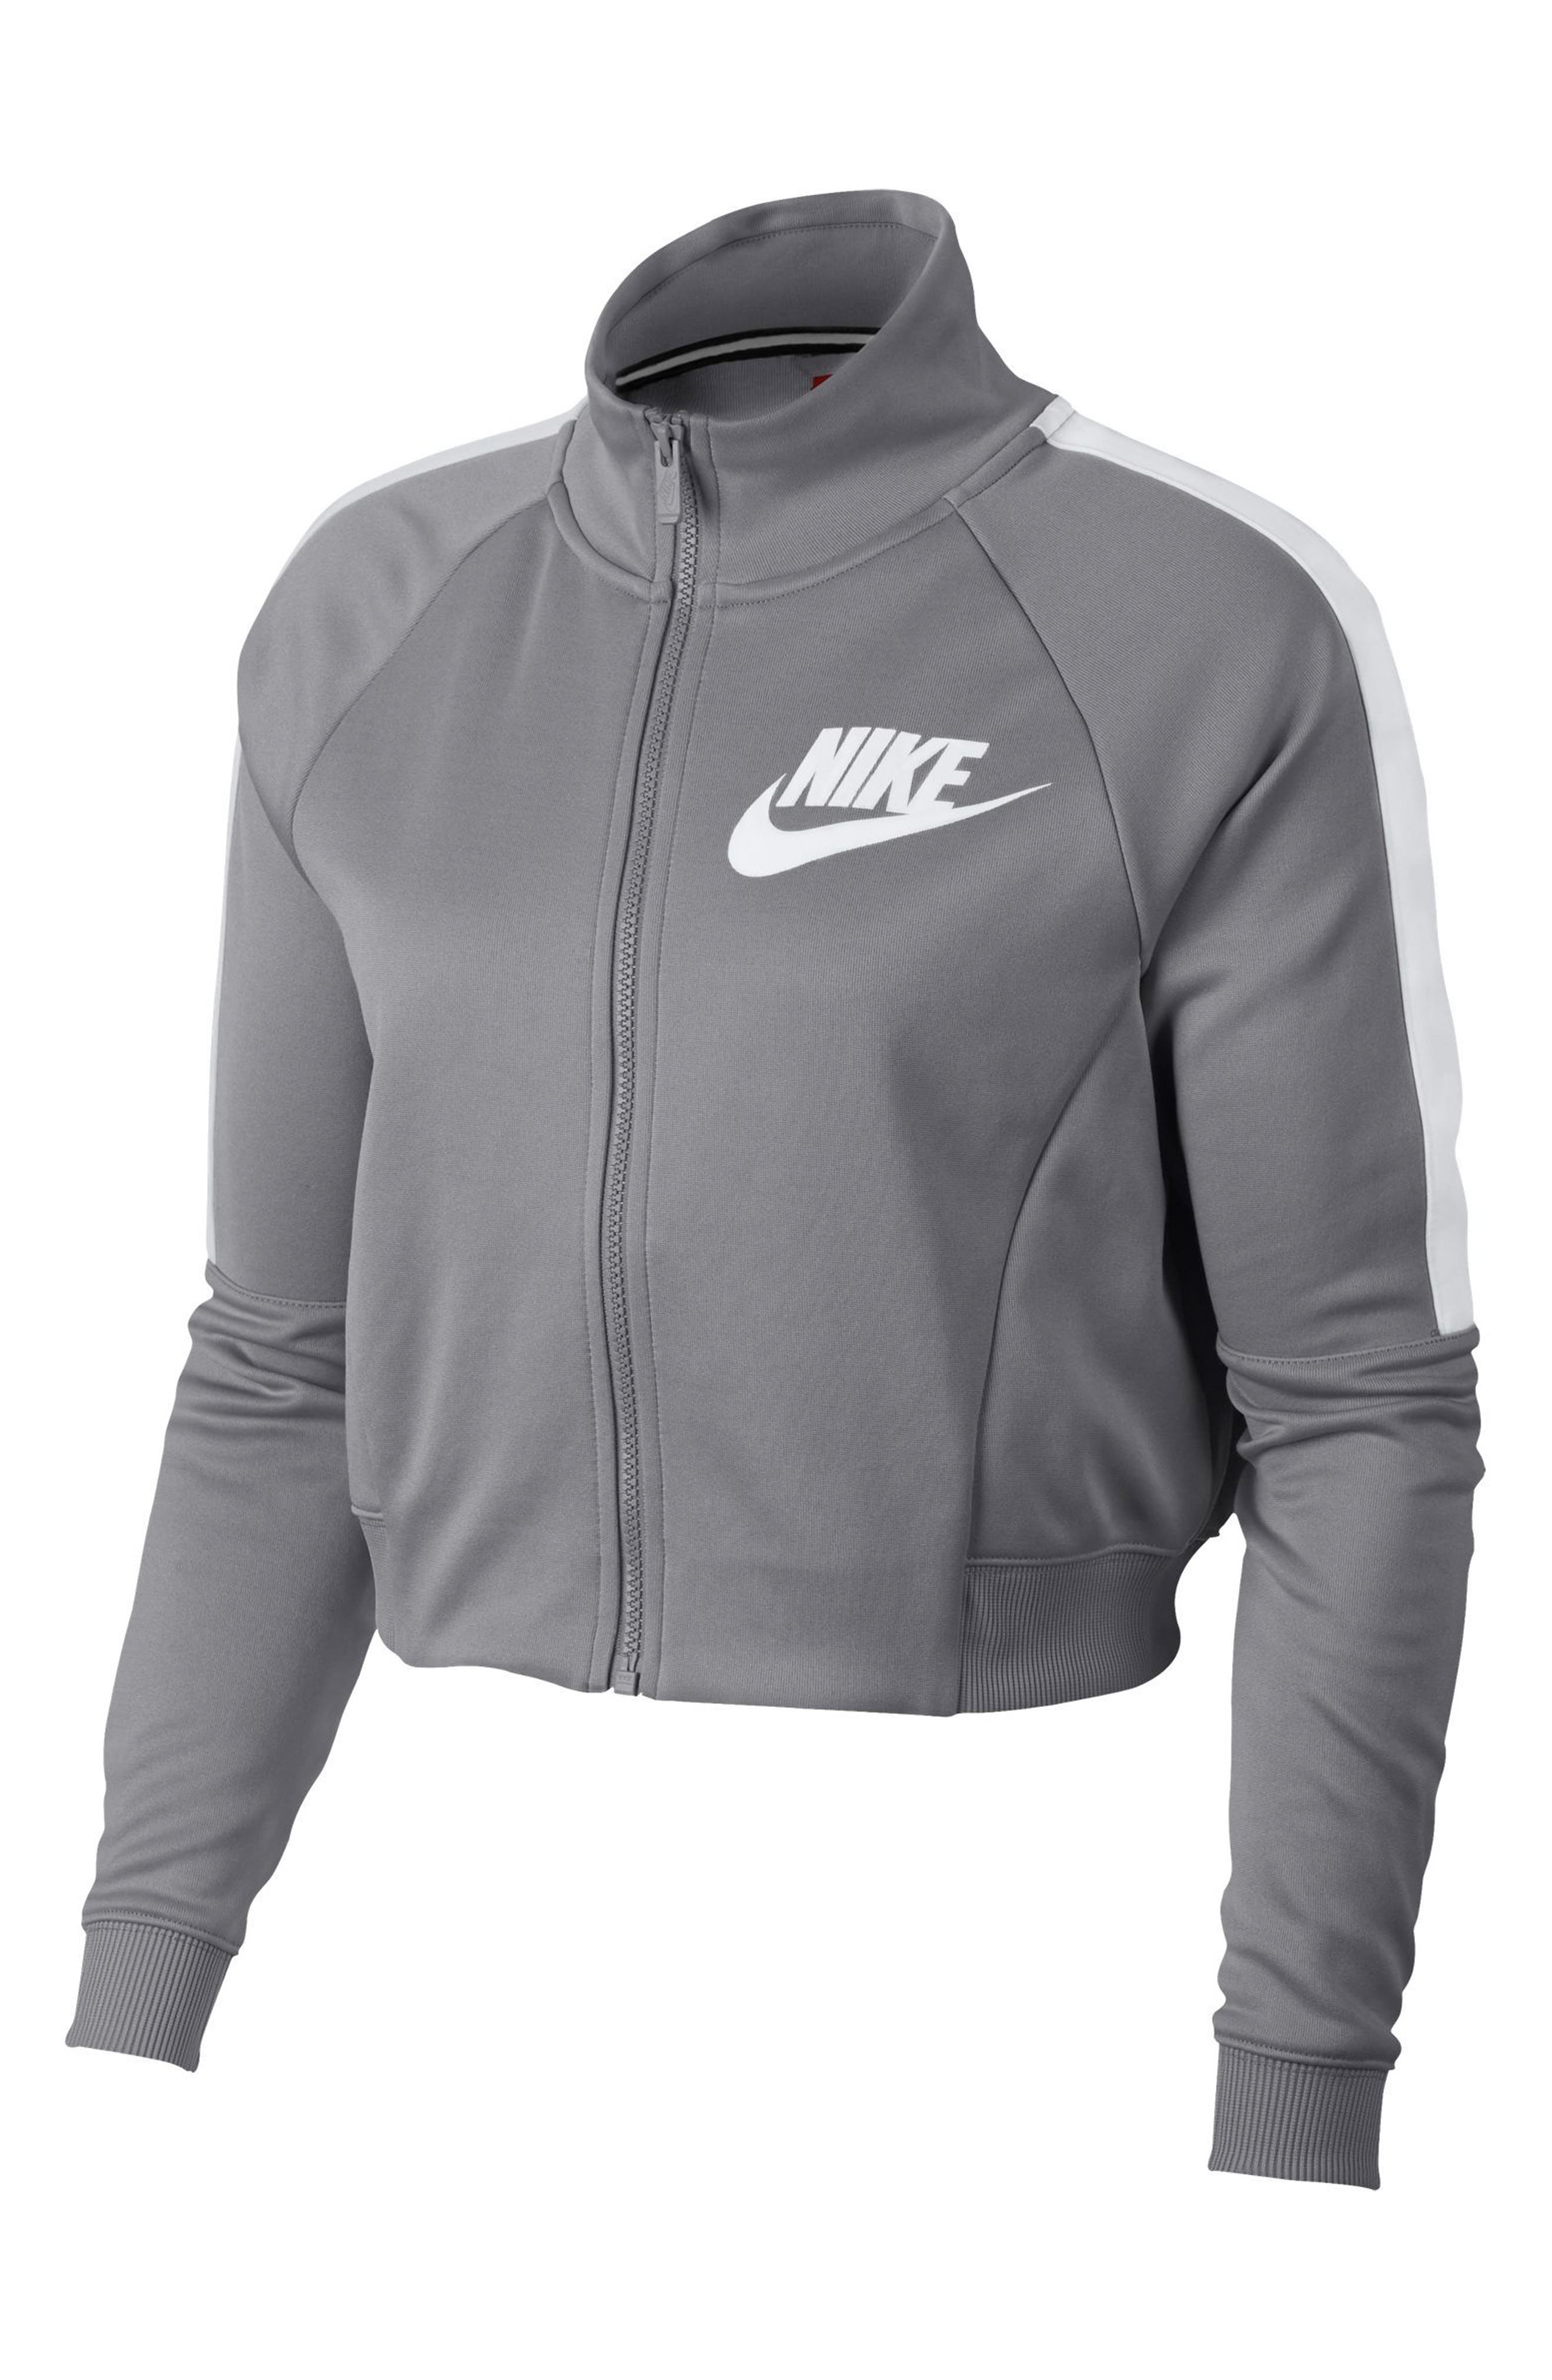 Sportswear N98 Jacket,                             Main thumbnail 1, color,                             Atmosphere Grey/ White